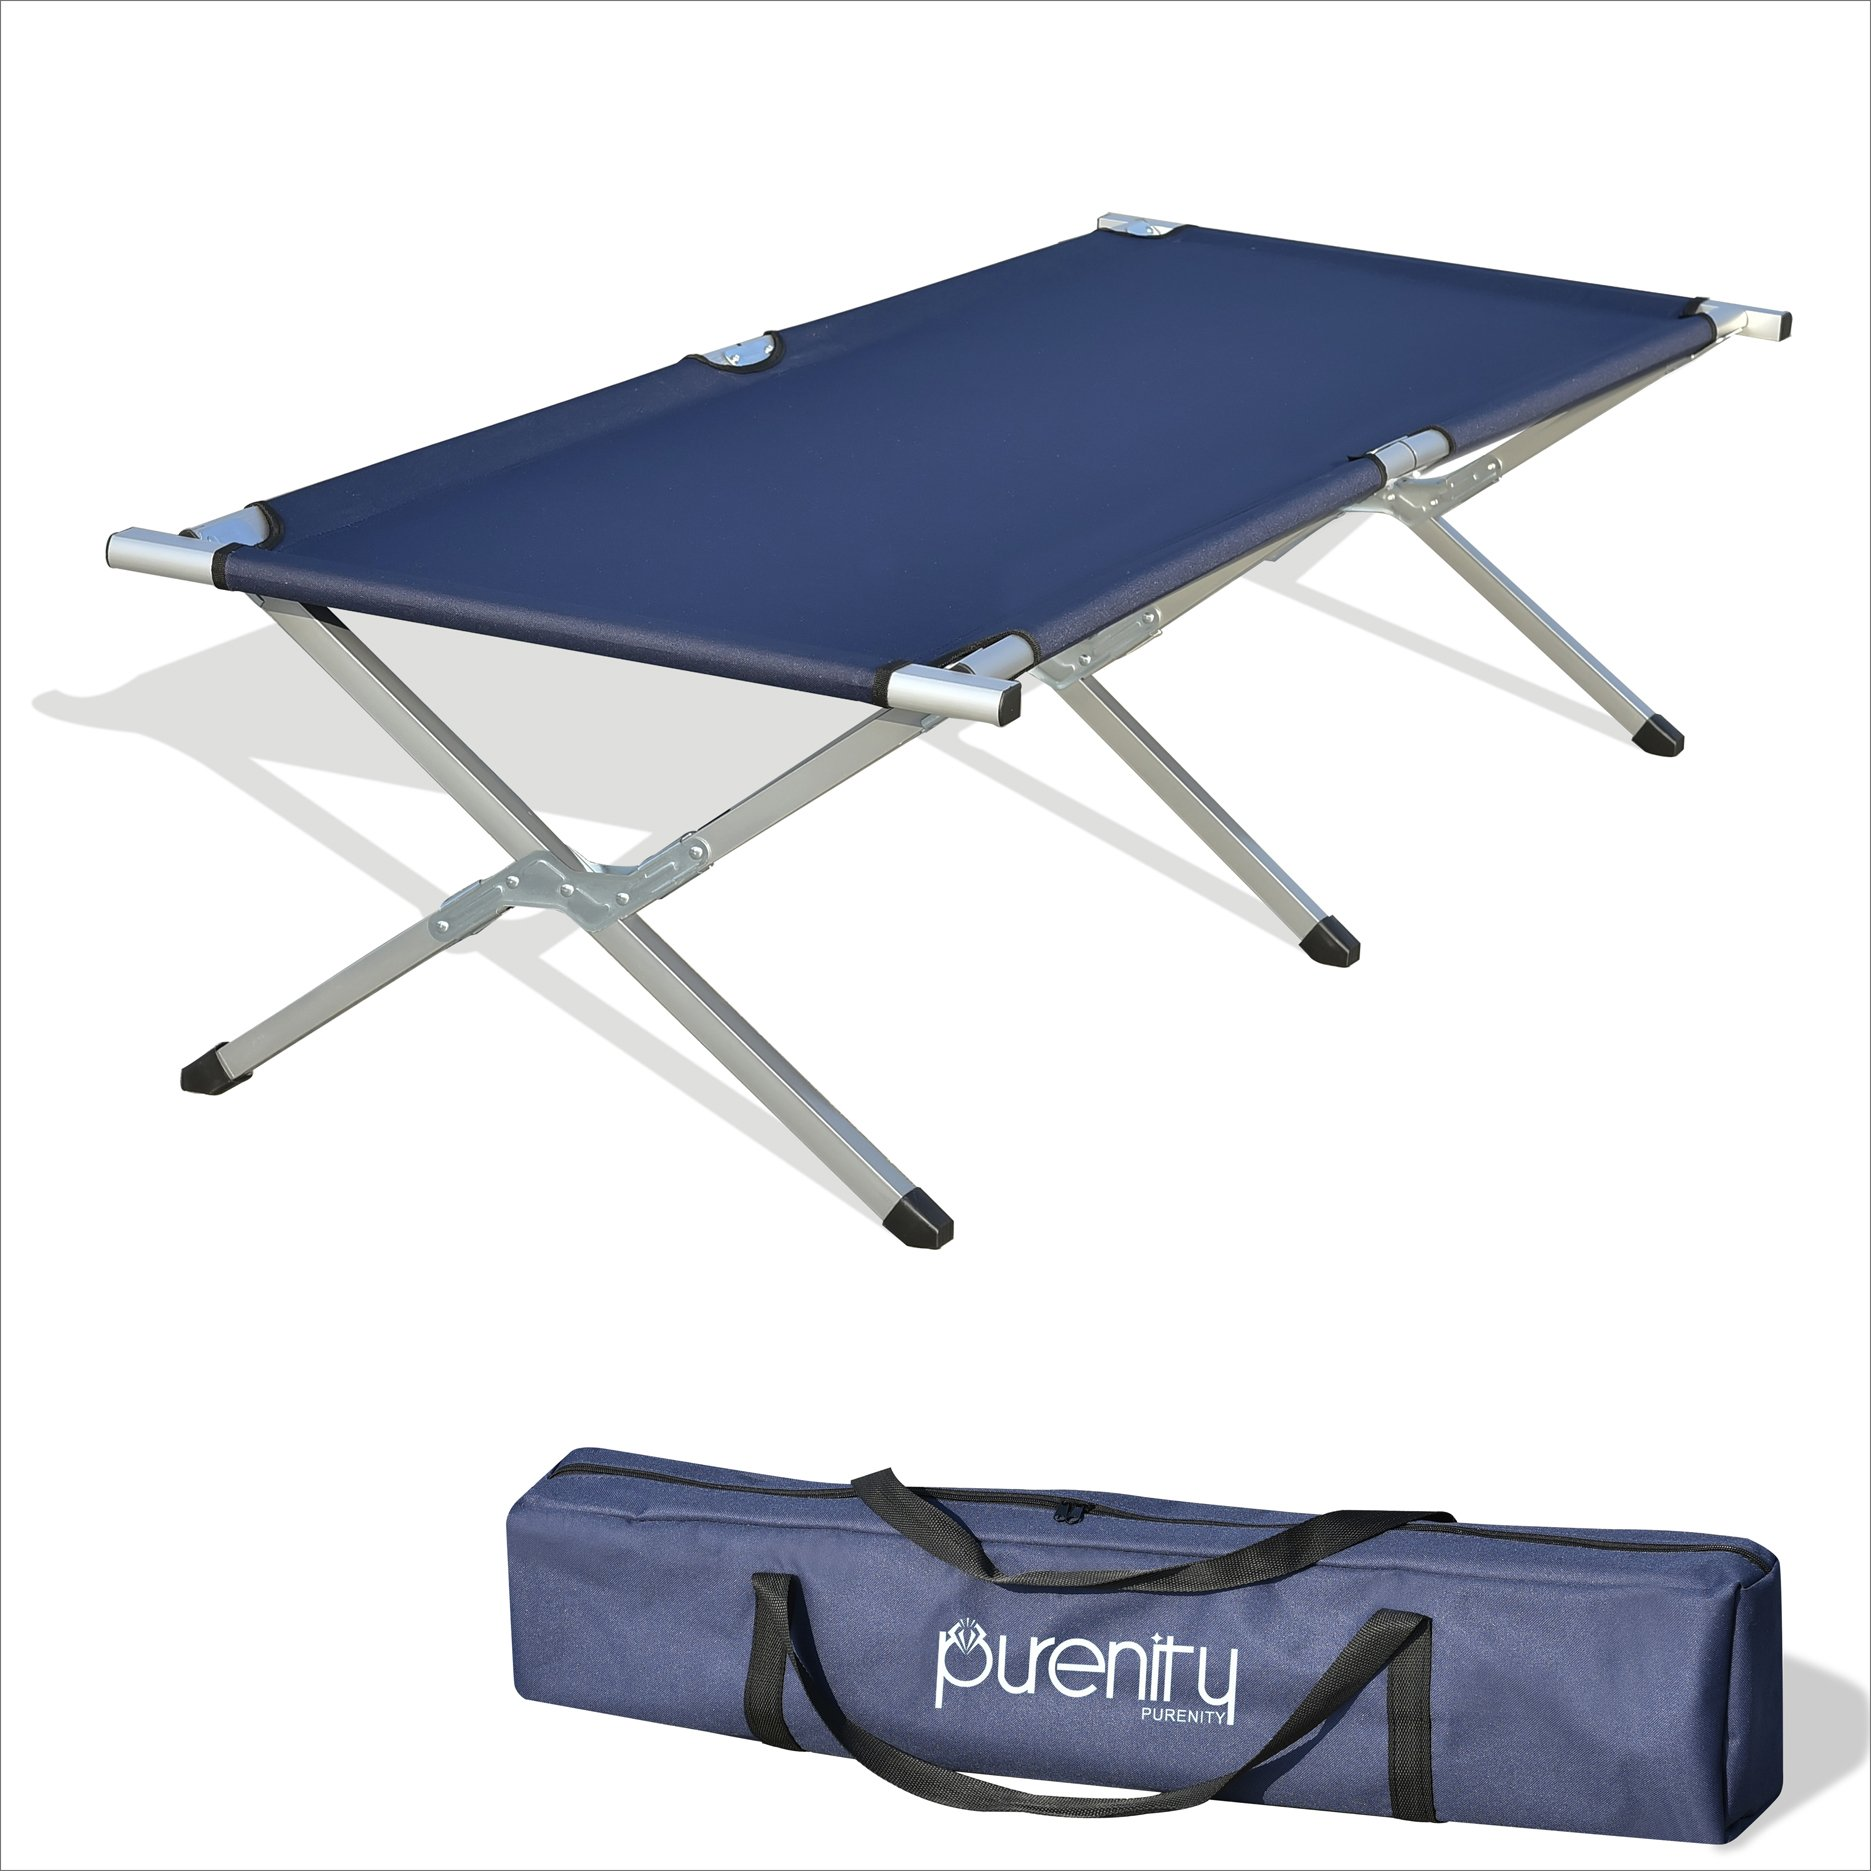 Purenity Folding Military Bed Portable Sport Camping COT With Free Storage Bag (Dark Blue) by Purenity